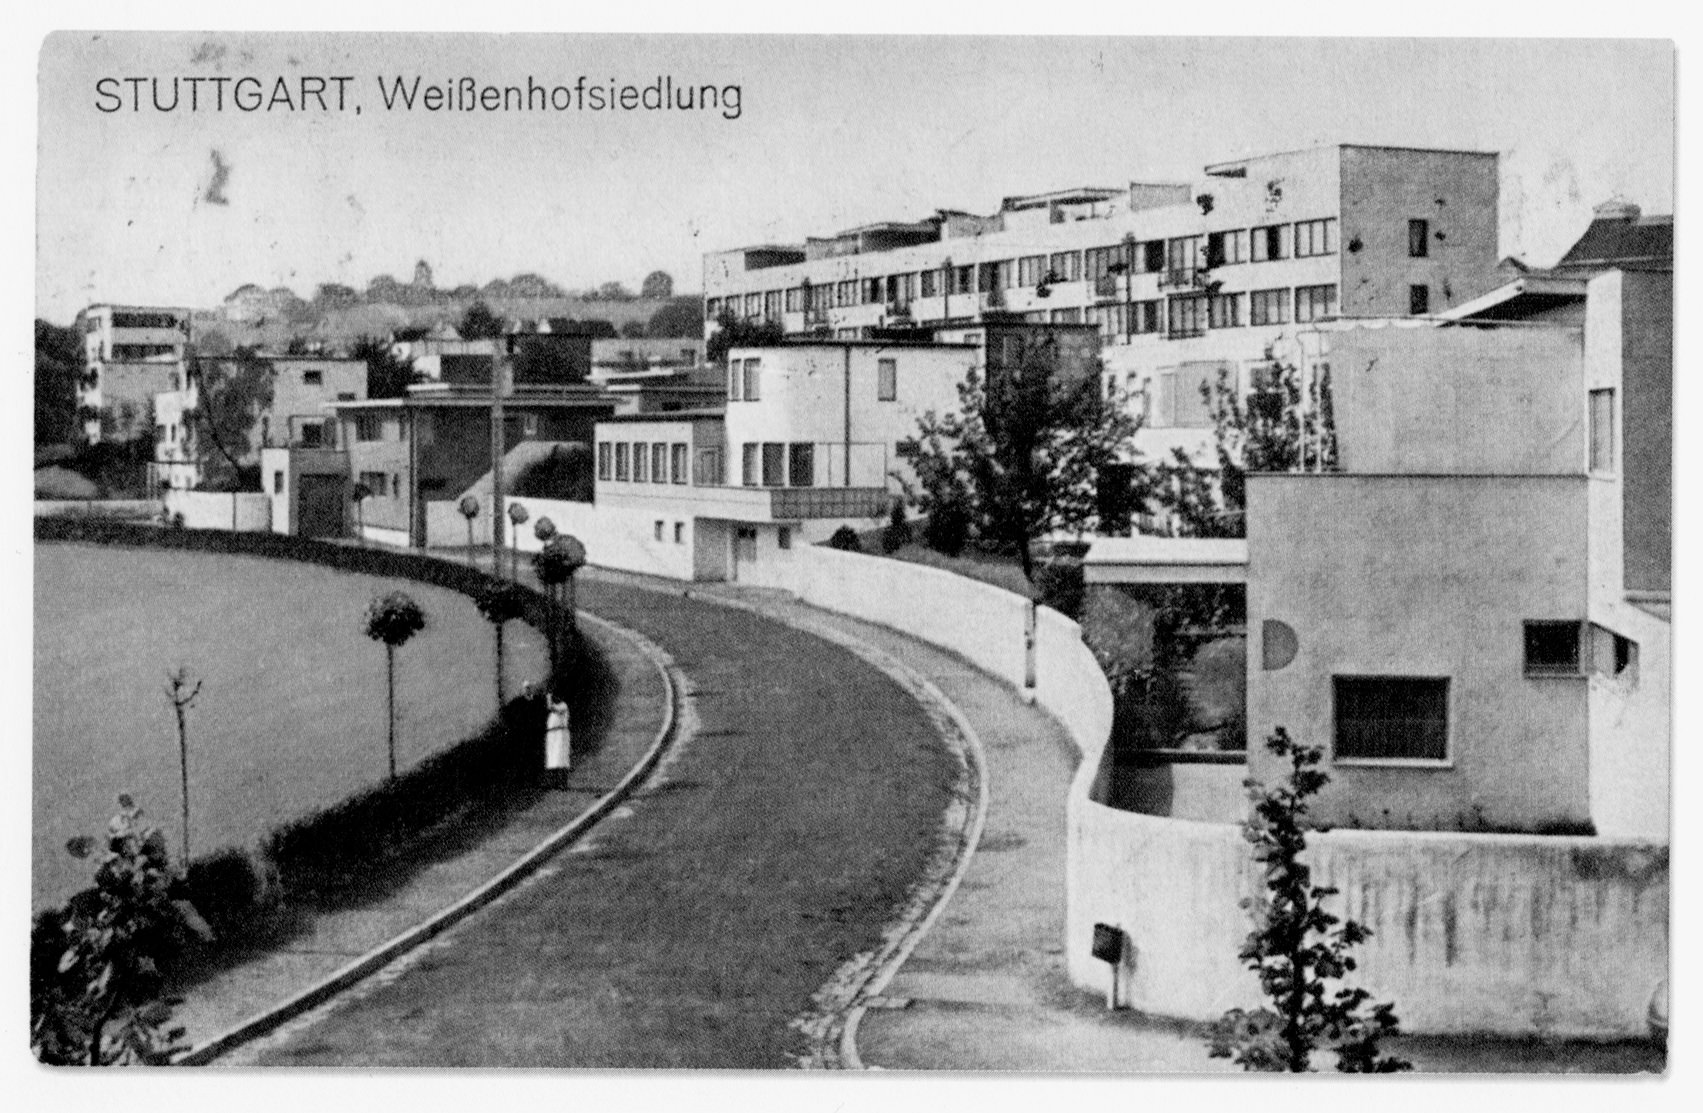 Lampengeschäft Stuttgart Grey Room The Architectural Postcard Photography Cinema And